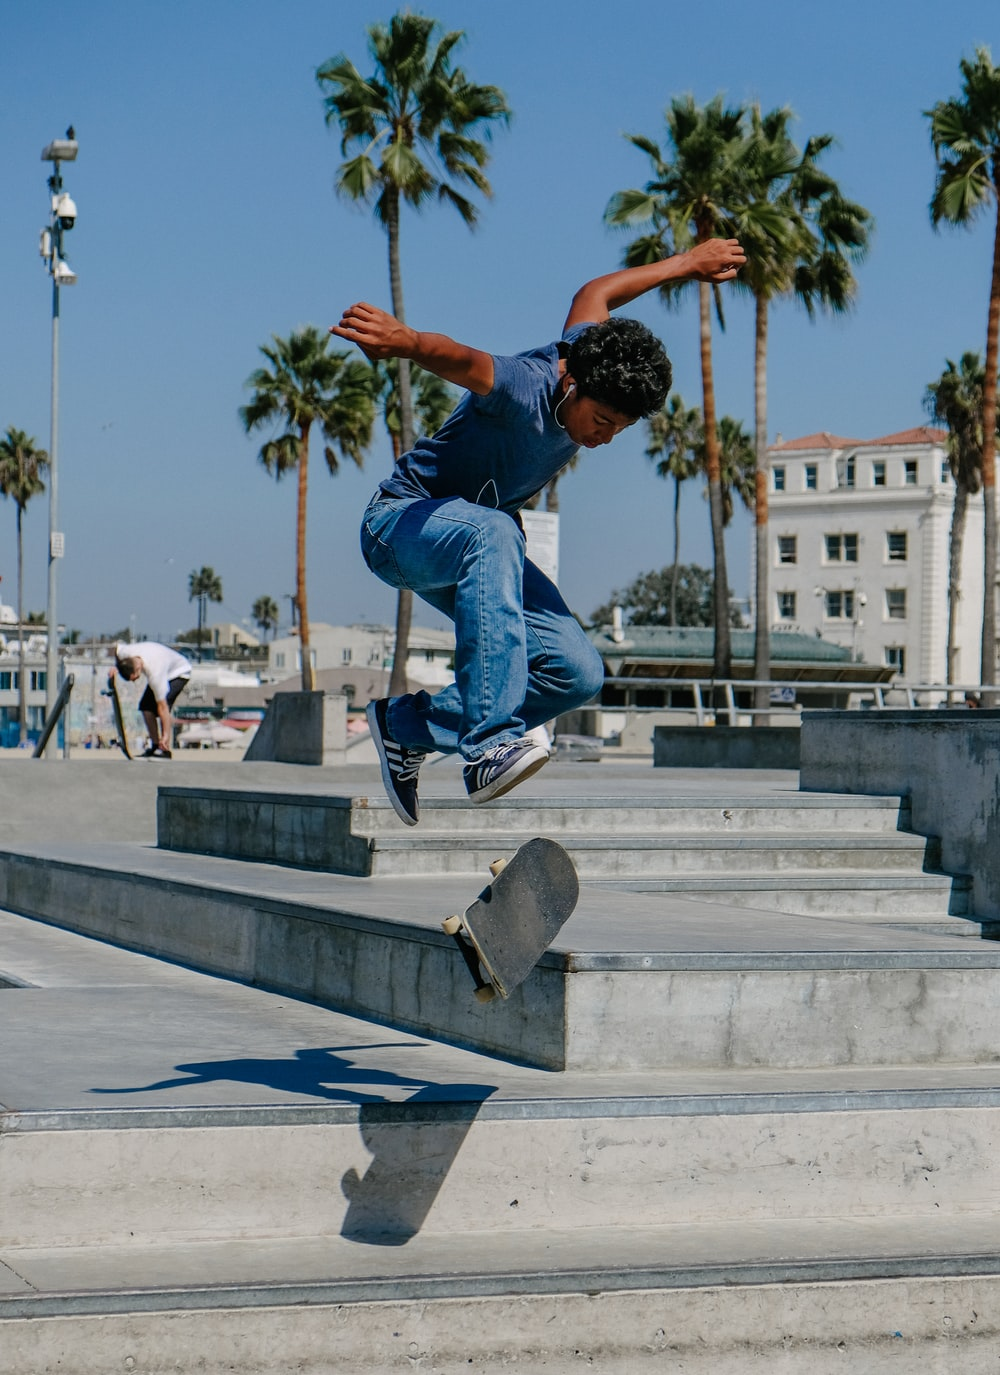 man playing skateboard on gray concrete stairs